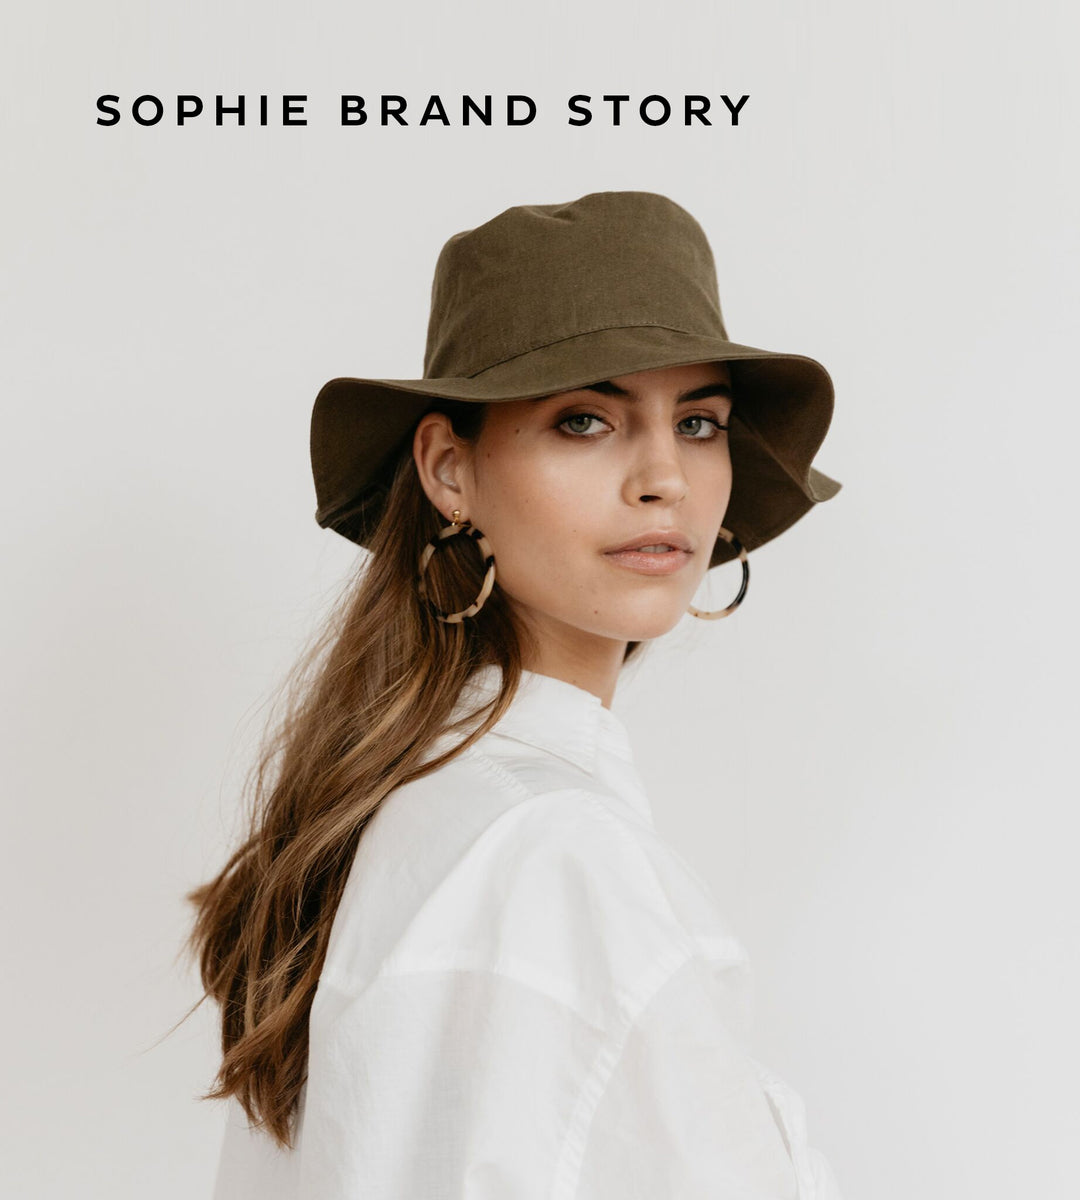 Sophie Brand Story